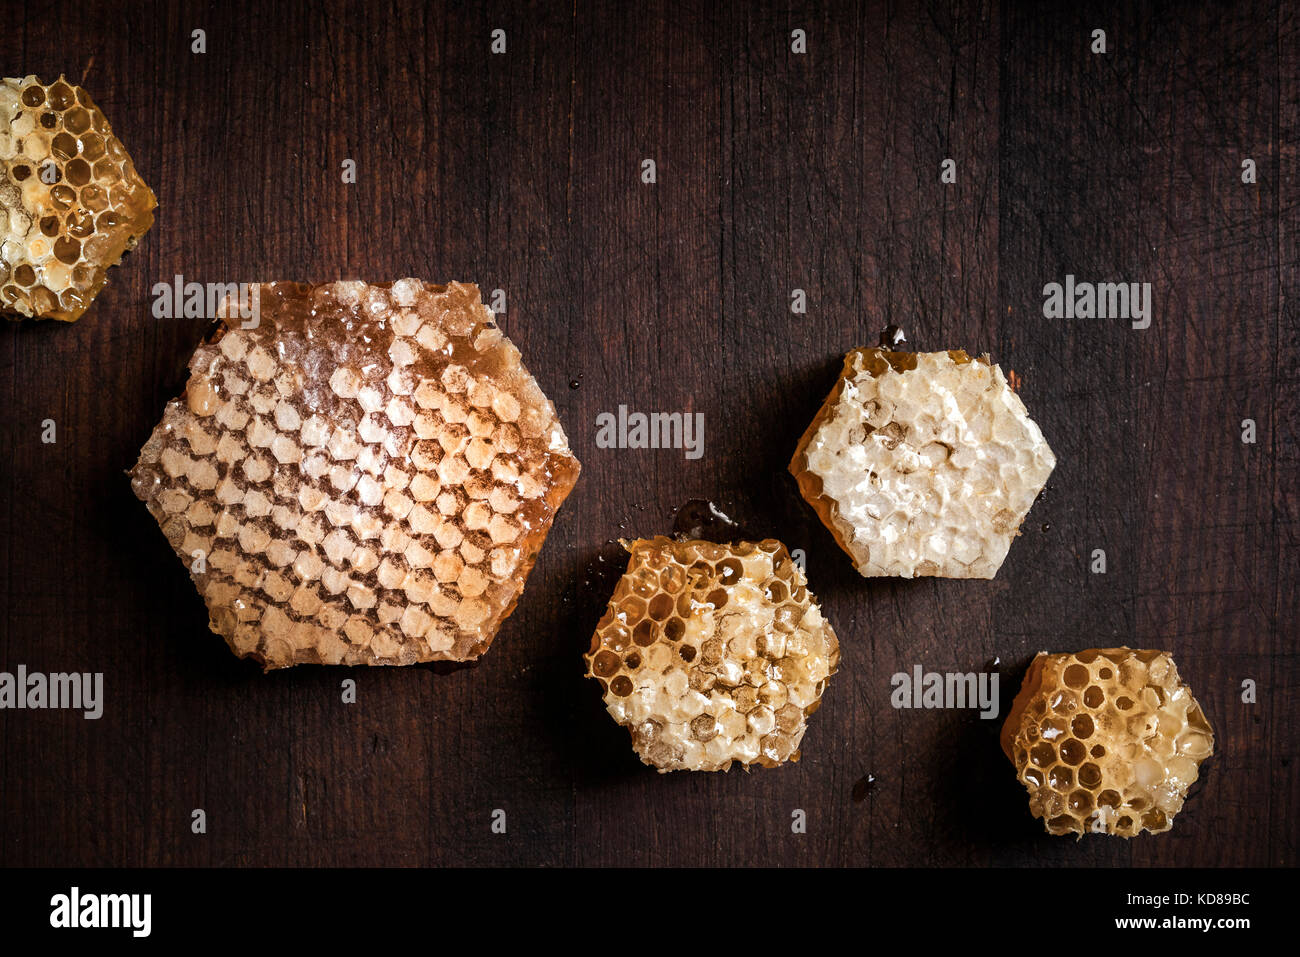 Large pieces of fresh honeycomb cut into hexagon shapes. - Stock Image